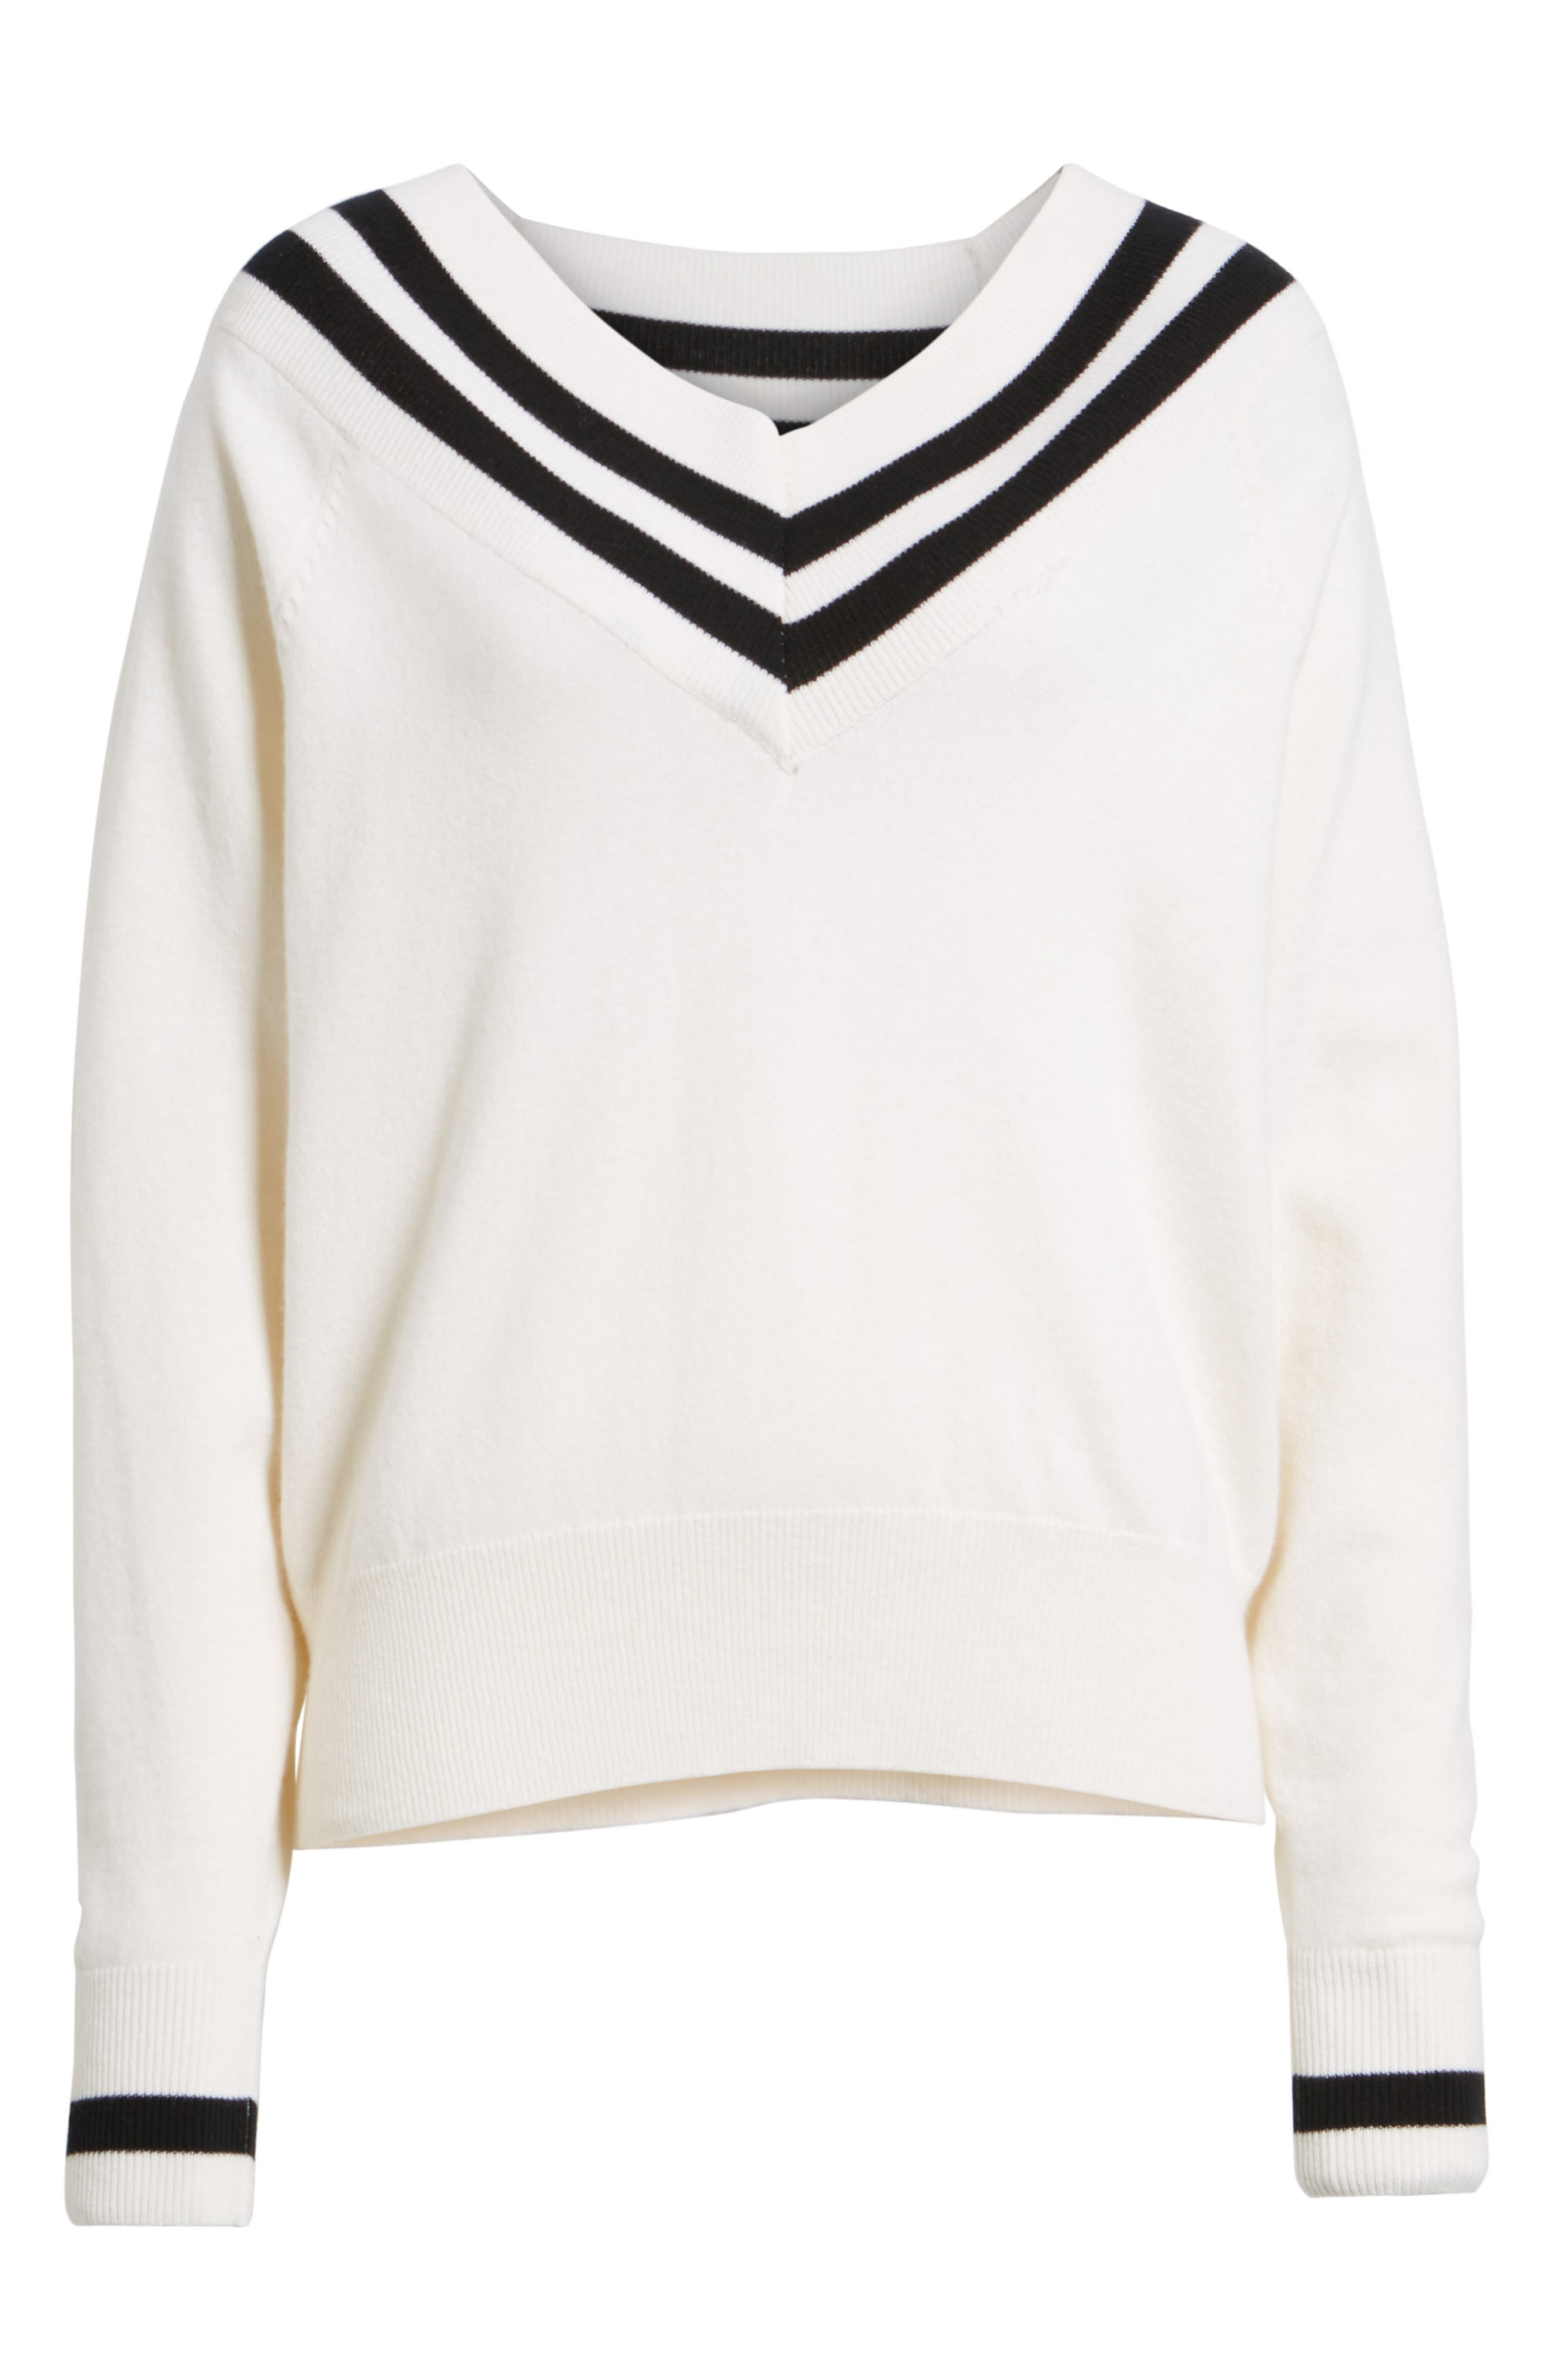 KENDALL + KYLIE,                             Stripe Sweater,                             Alternate thumbnail 6, color,                             110